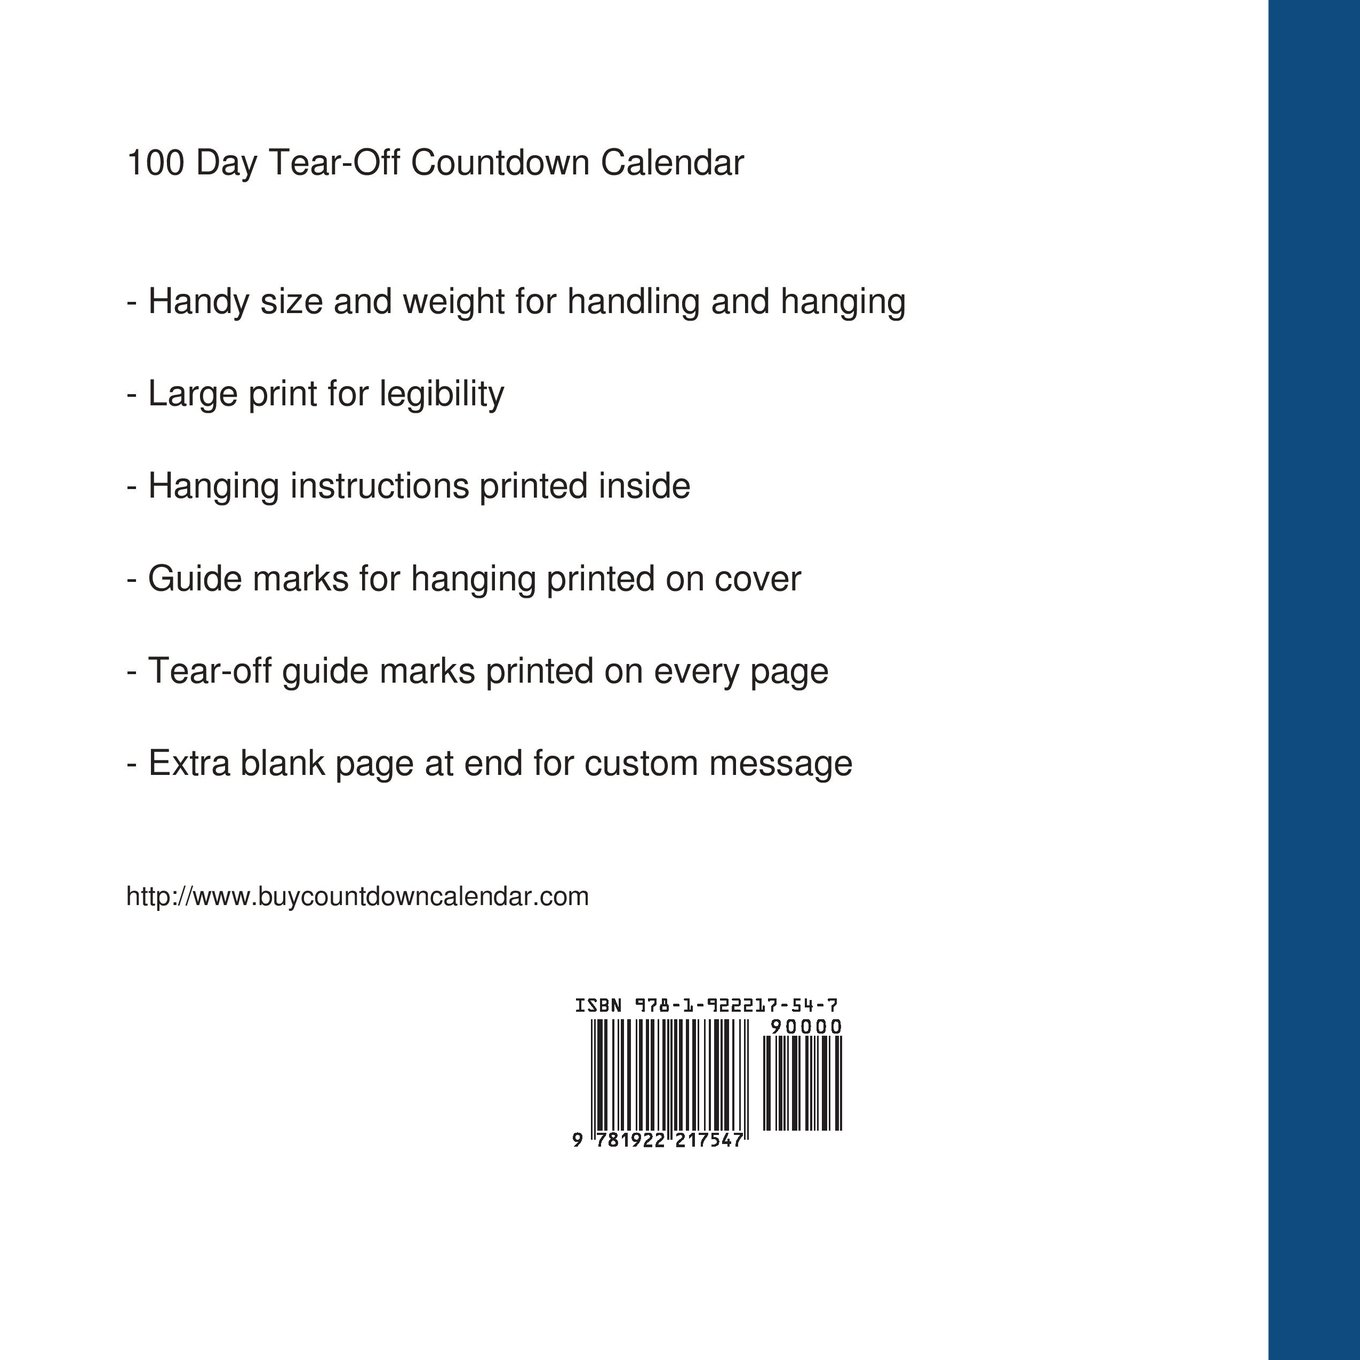 image relating to 100 Day Countdown Printable titled : 100 Working day Tear-Off Countdown Calendar